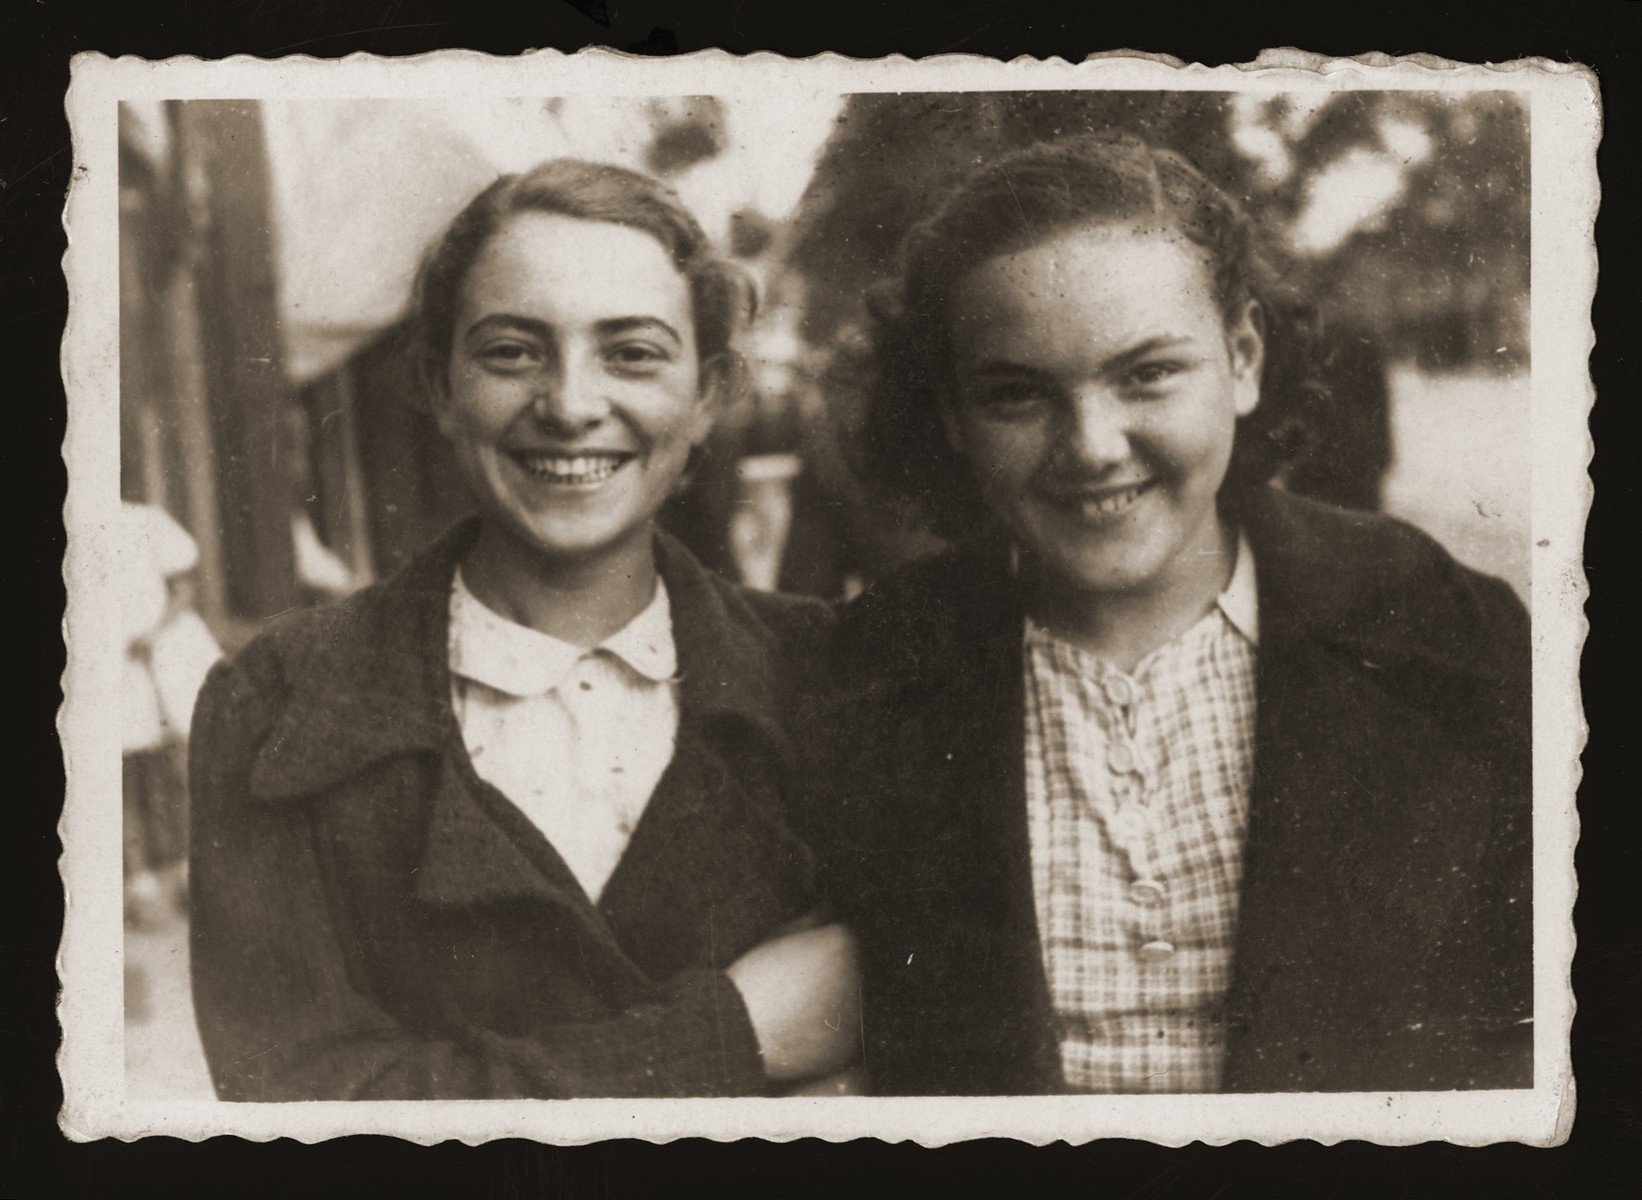 Two teenage Jewish girls pose on a street in Chelm.  Pictured are Estera Ajzen (left) and her friend, Maniusia Wajntraub (right).